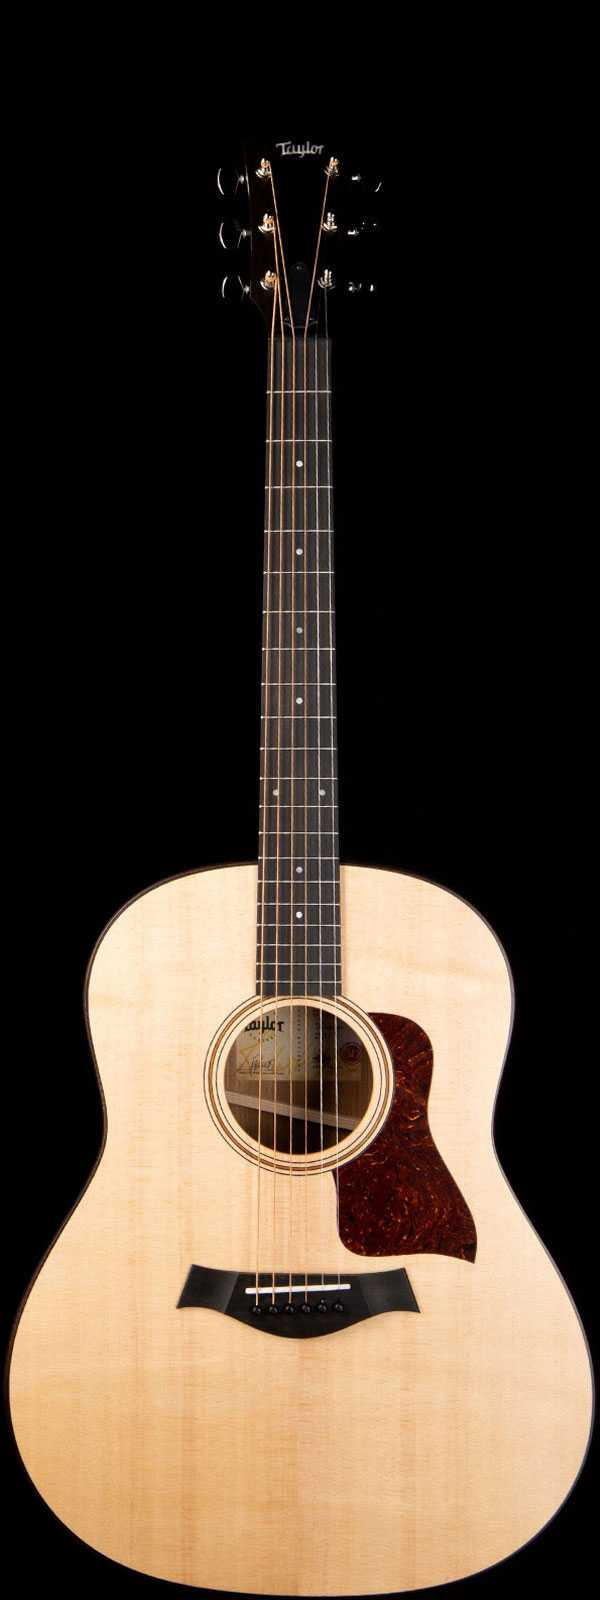 Taylor AD17 American Dream Grand Pacific Sitka Spruce Top Natural